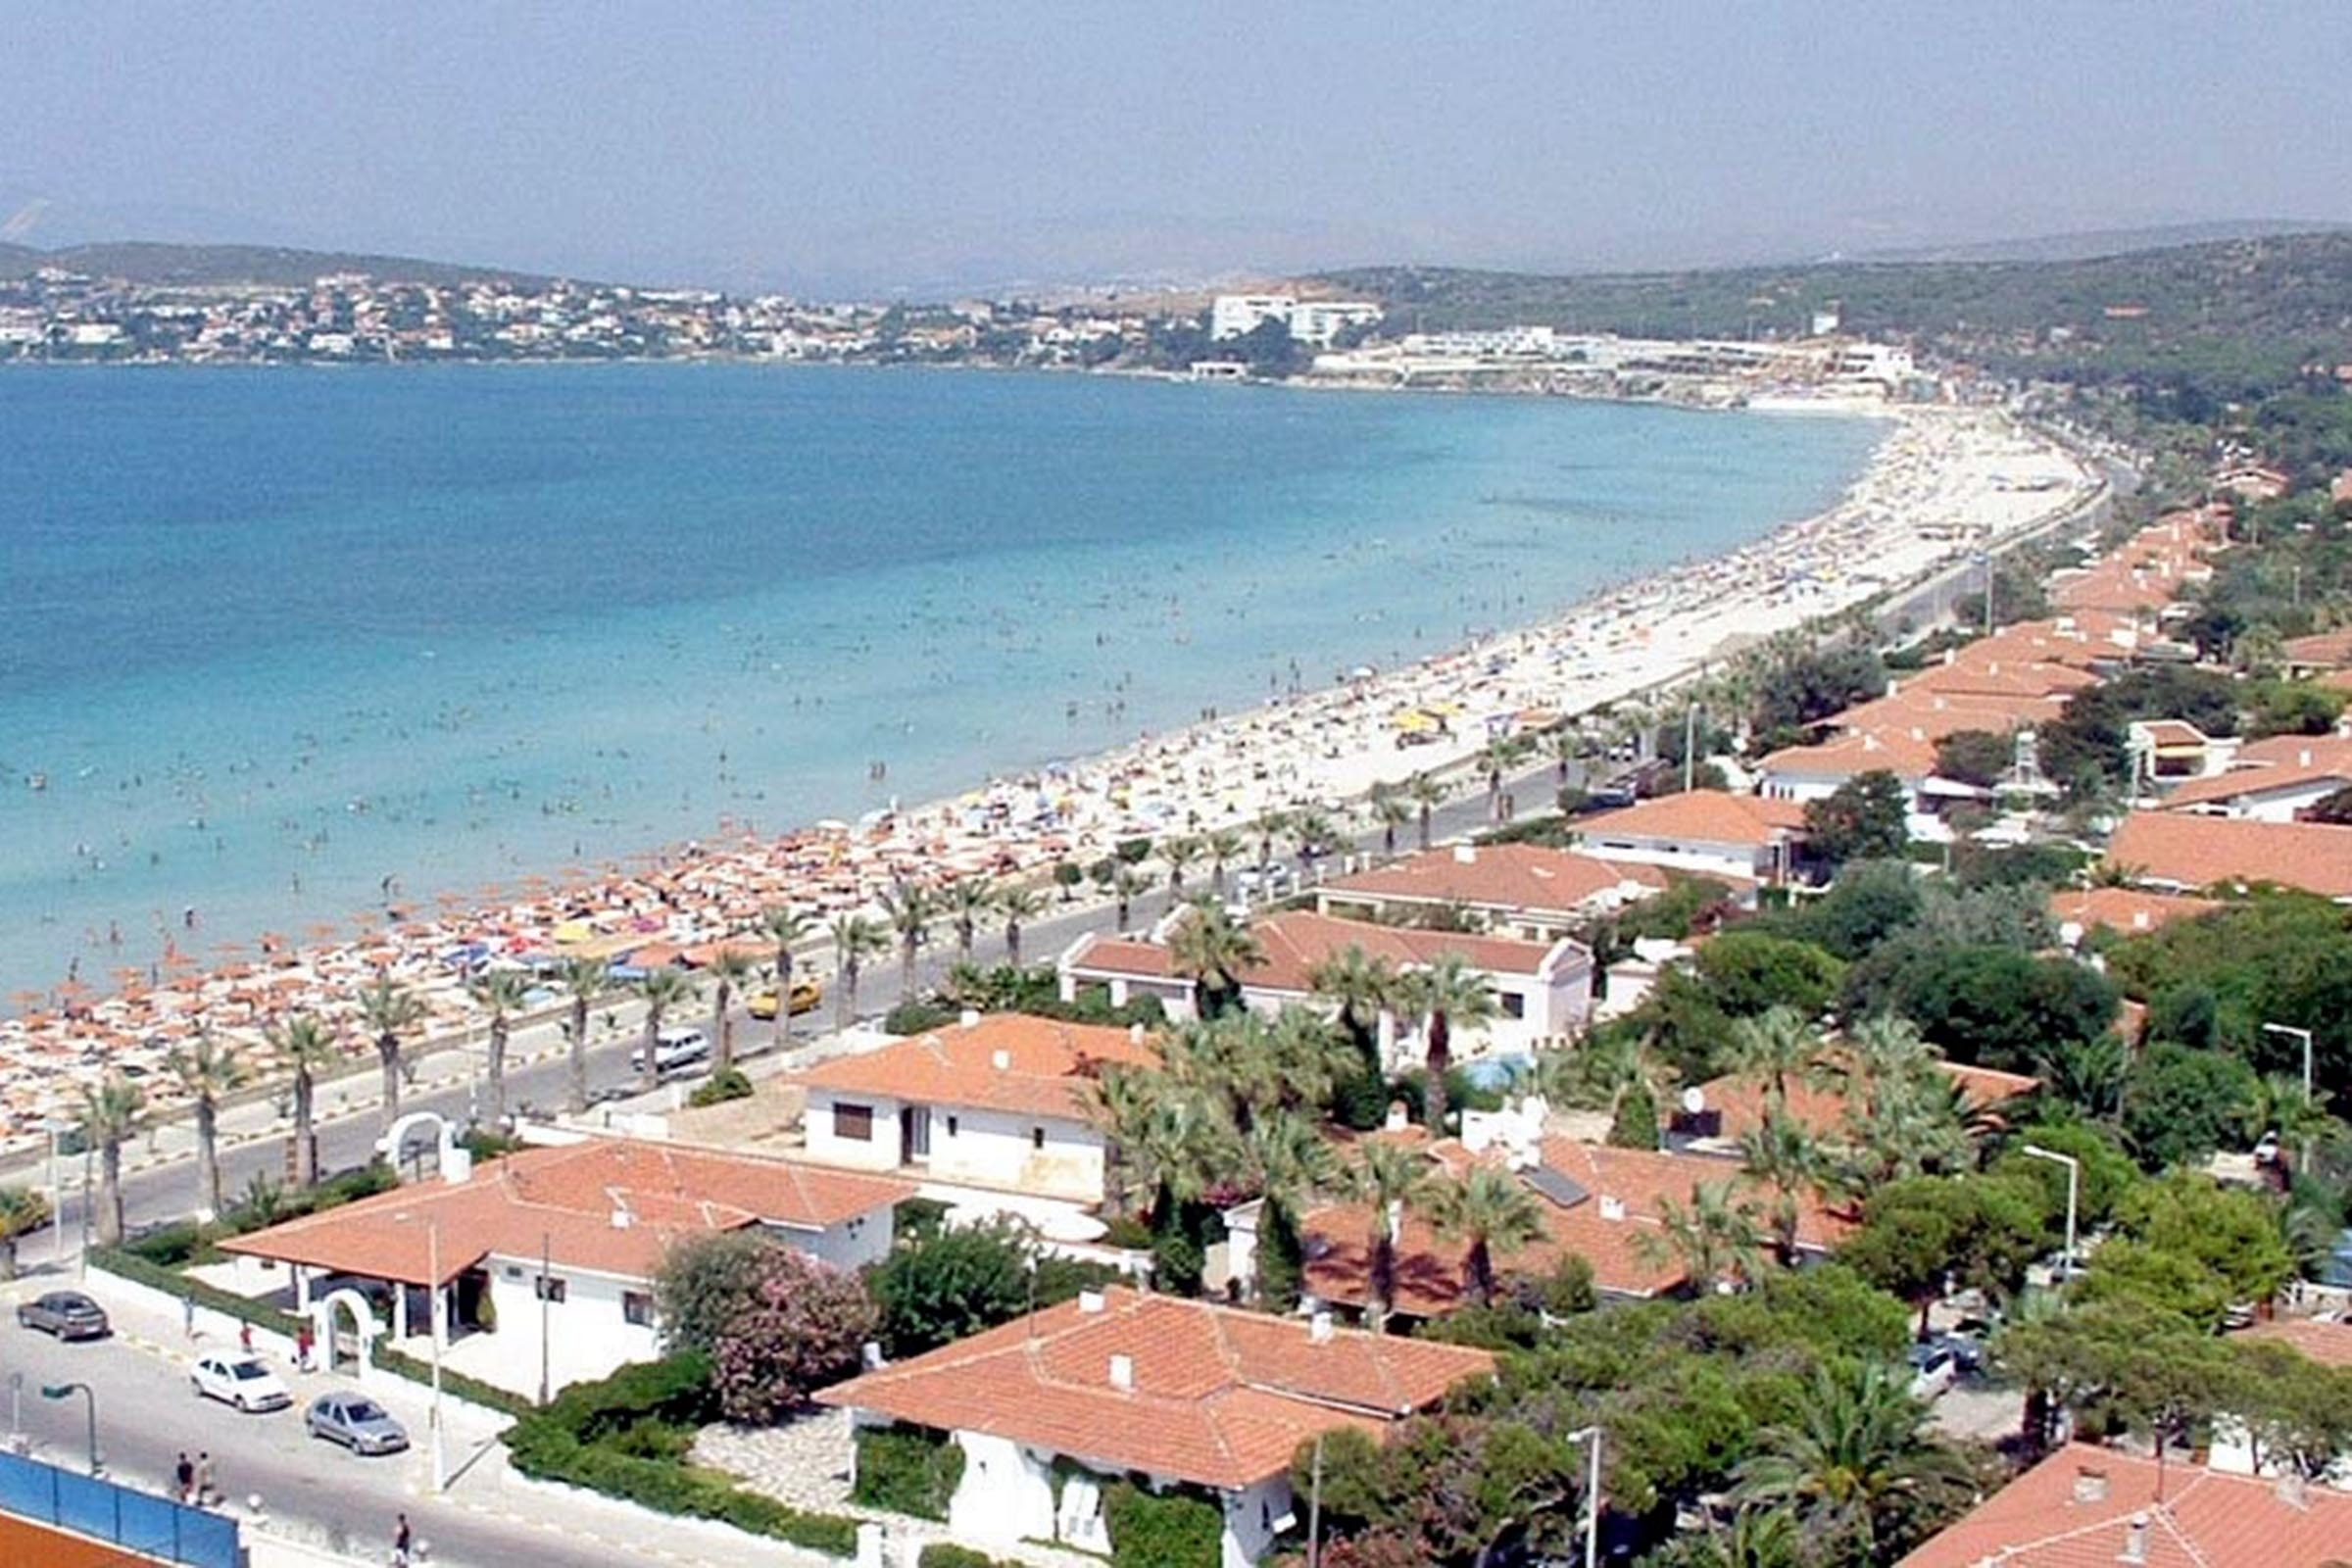 ÇEŞME ALAÇATI AIRPORT TO BECOME A TRAINING BASE DURING OFF SEASON